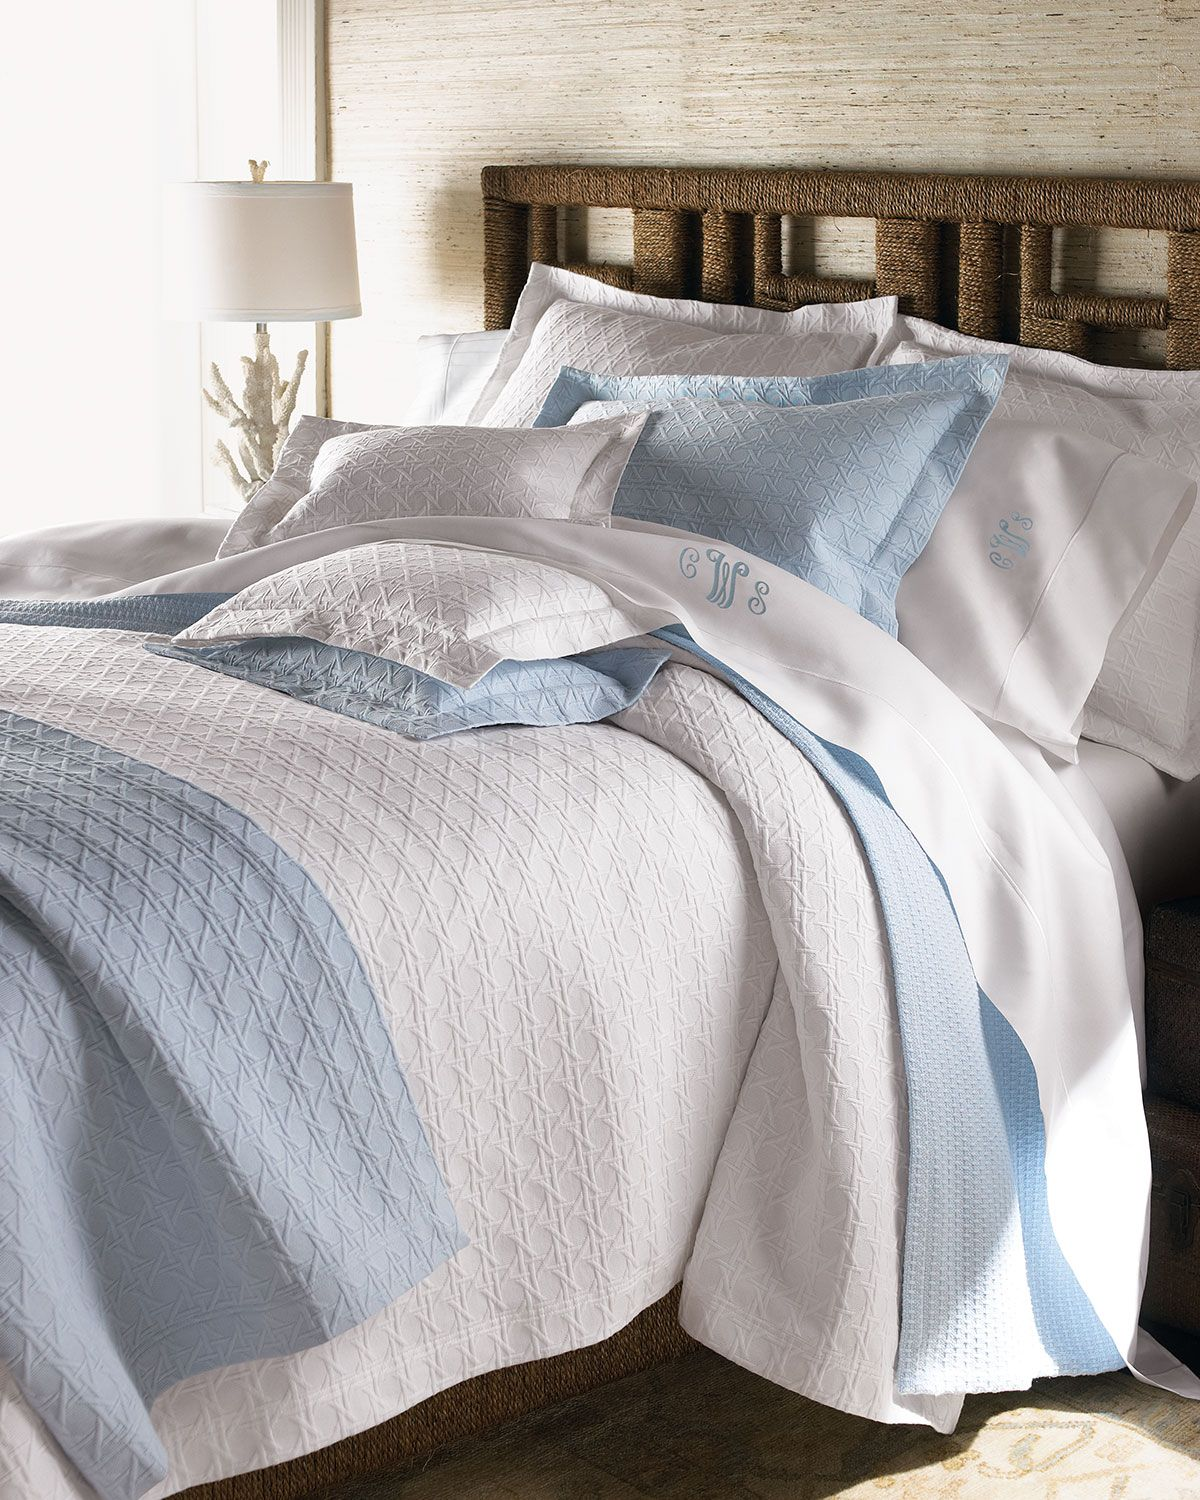 King Marcus Collection Cane Matelasse Coverlet | Bed linen ...